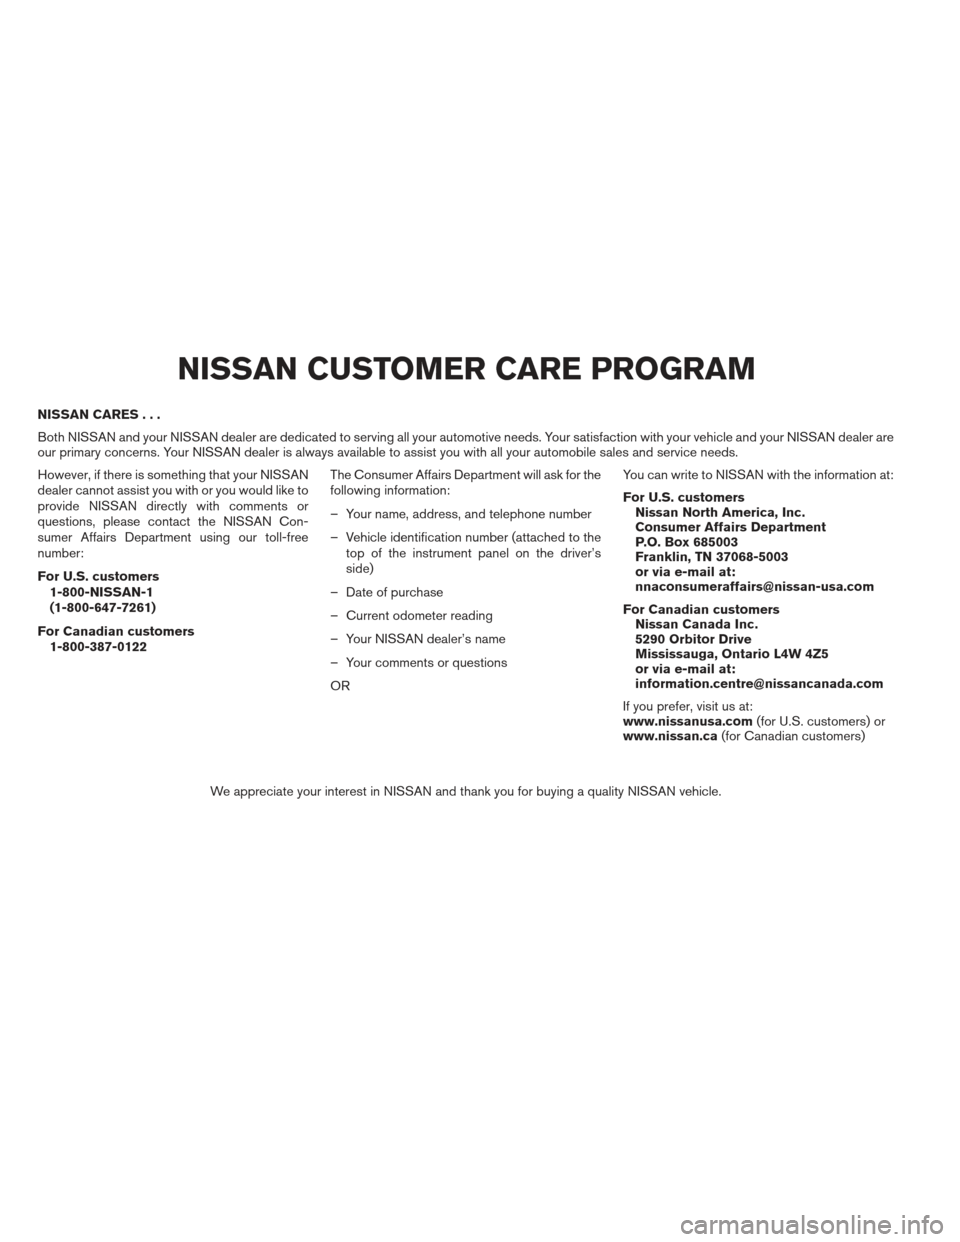 NISSAN XTERRA 2013 N50 / 2.G Owners Manual NISSAN CARES... Both NISSAN and your NISSAN dealer are dedicated to serving all your automotive needs. Your satisfaction with your vehicle and your NISSAN dealer are our primary concerns. Your NISSAN